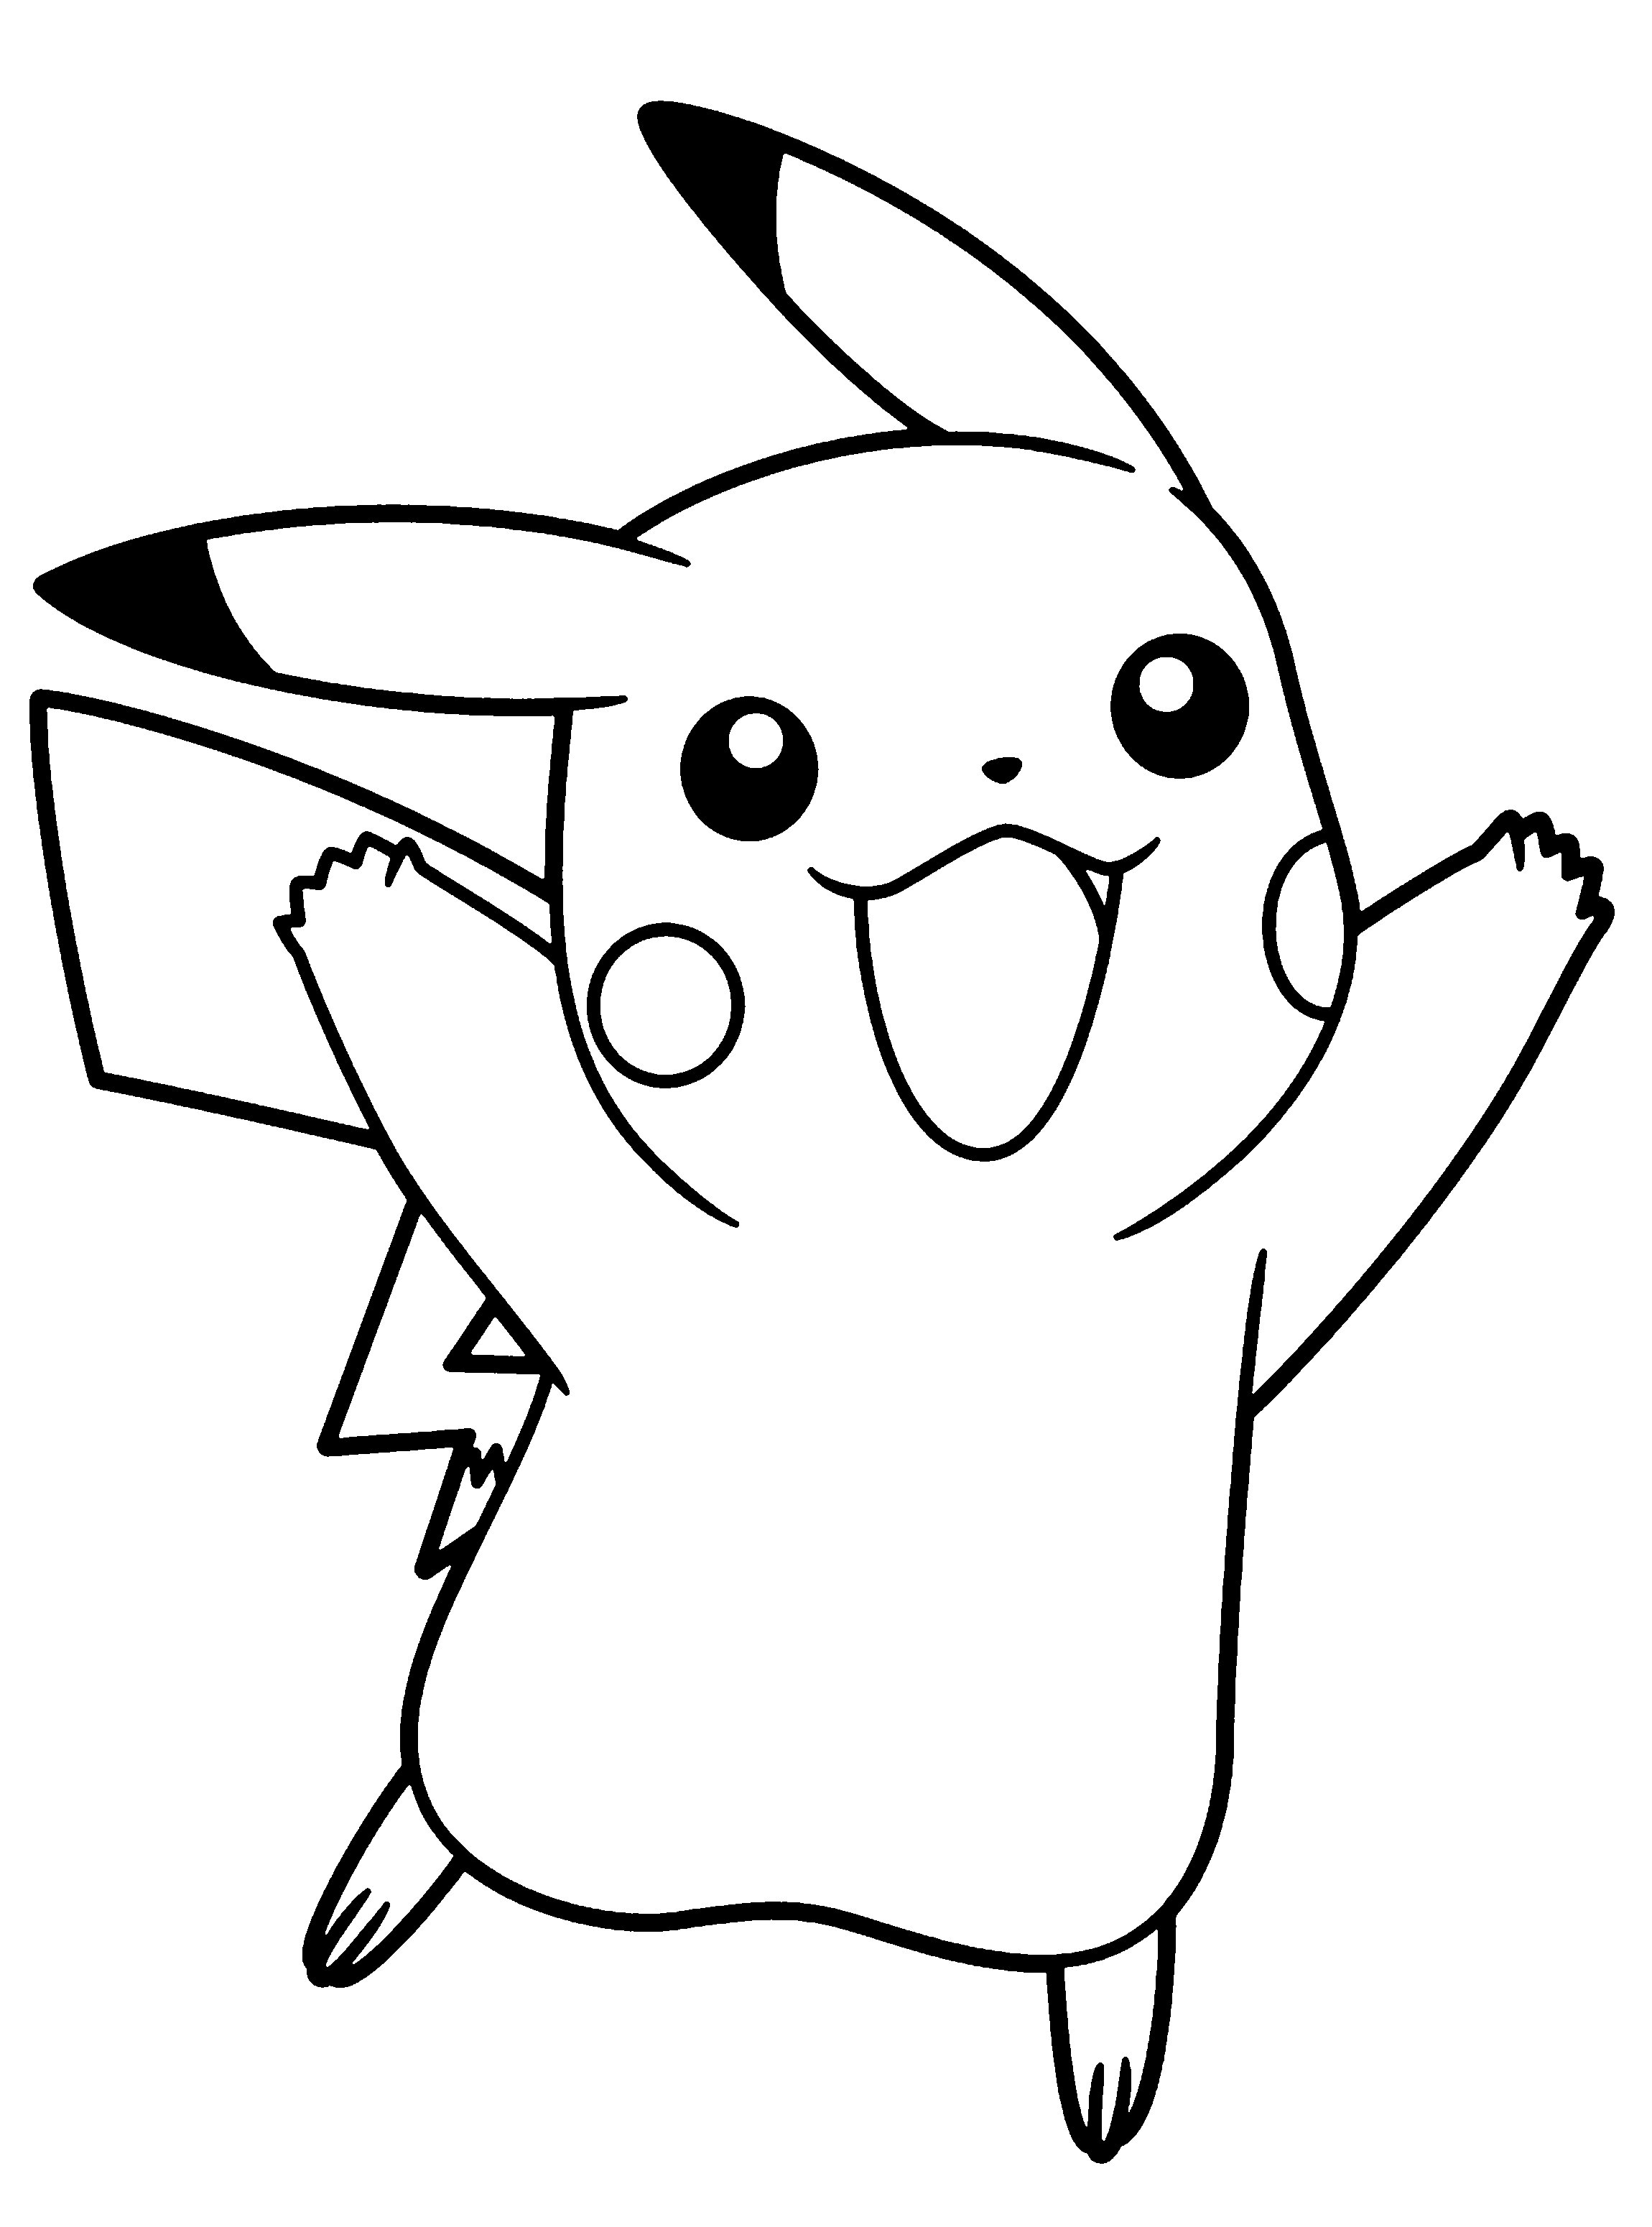 Pikachu coloring pages to download and print for free ...